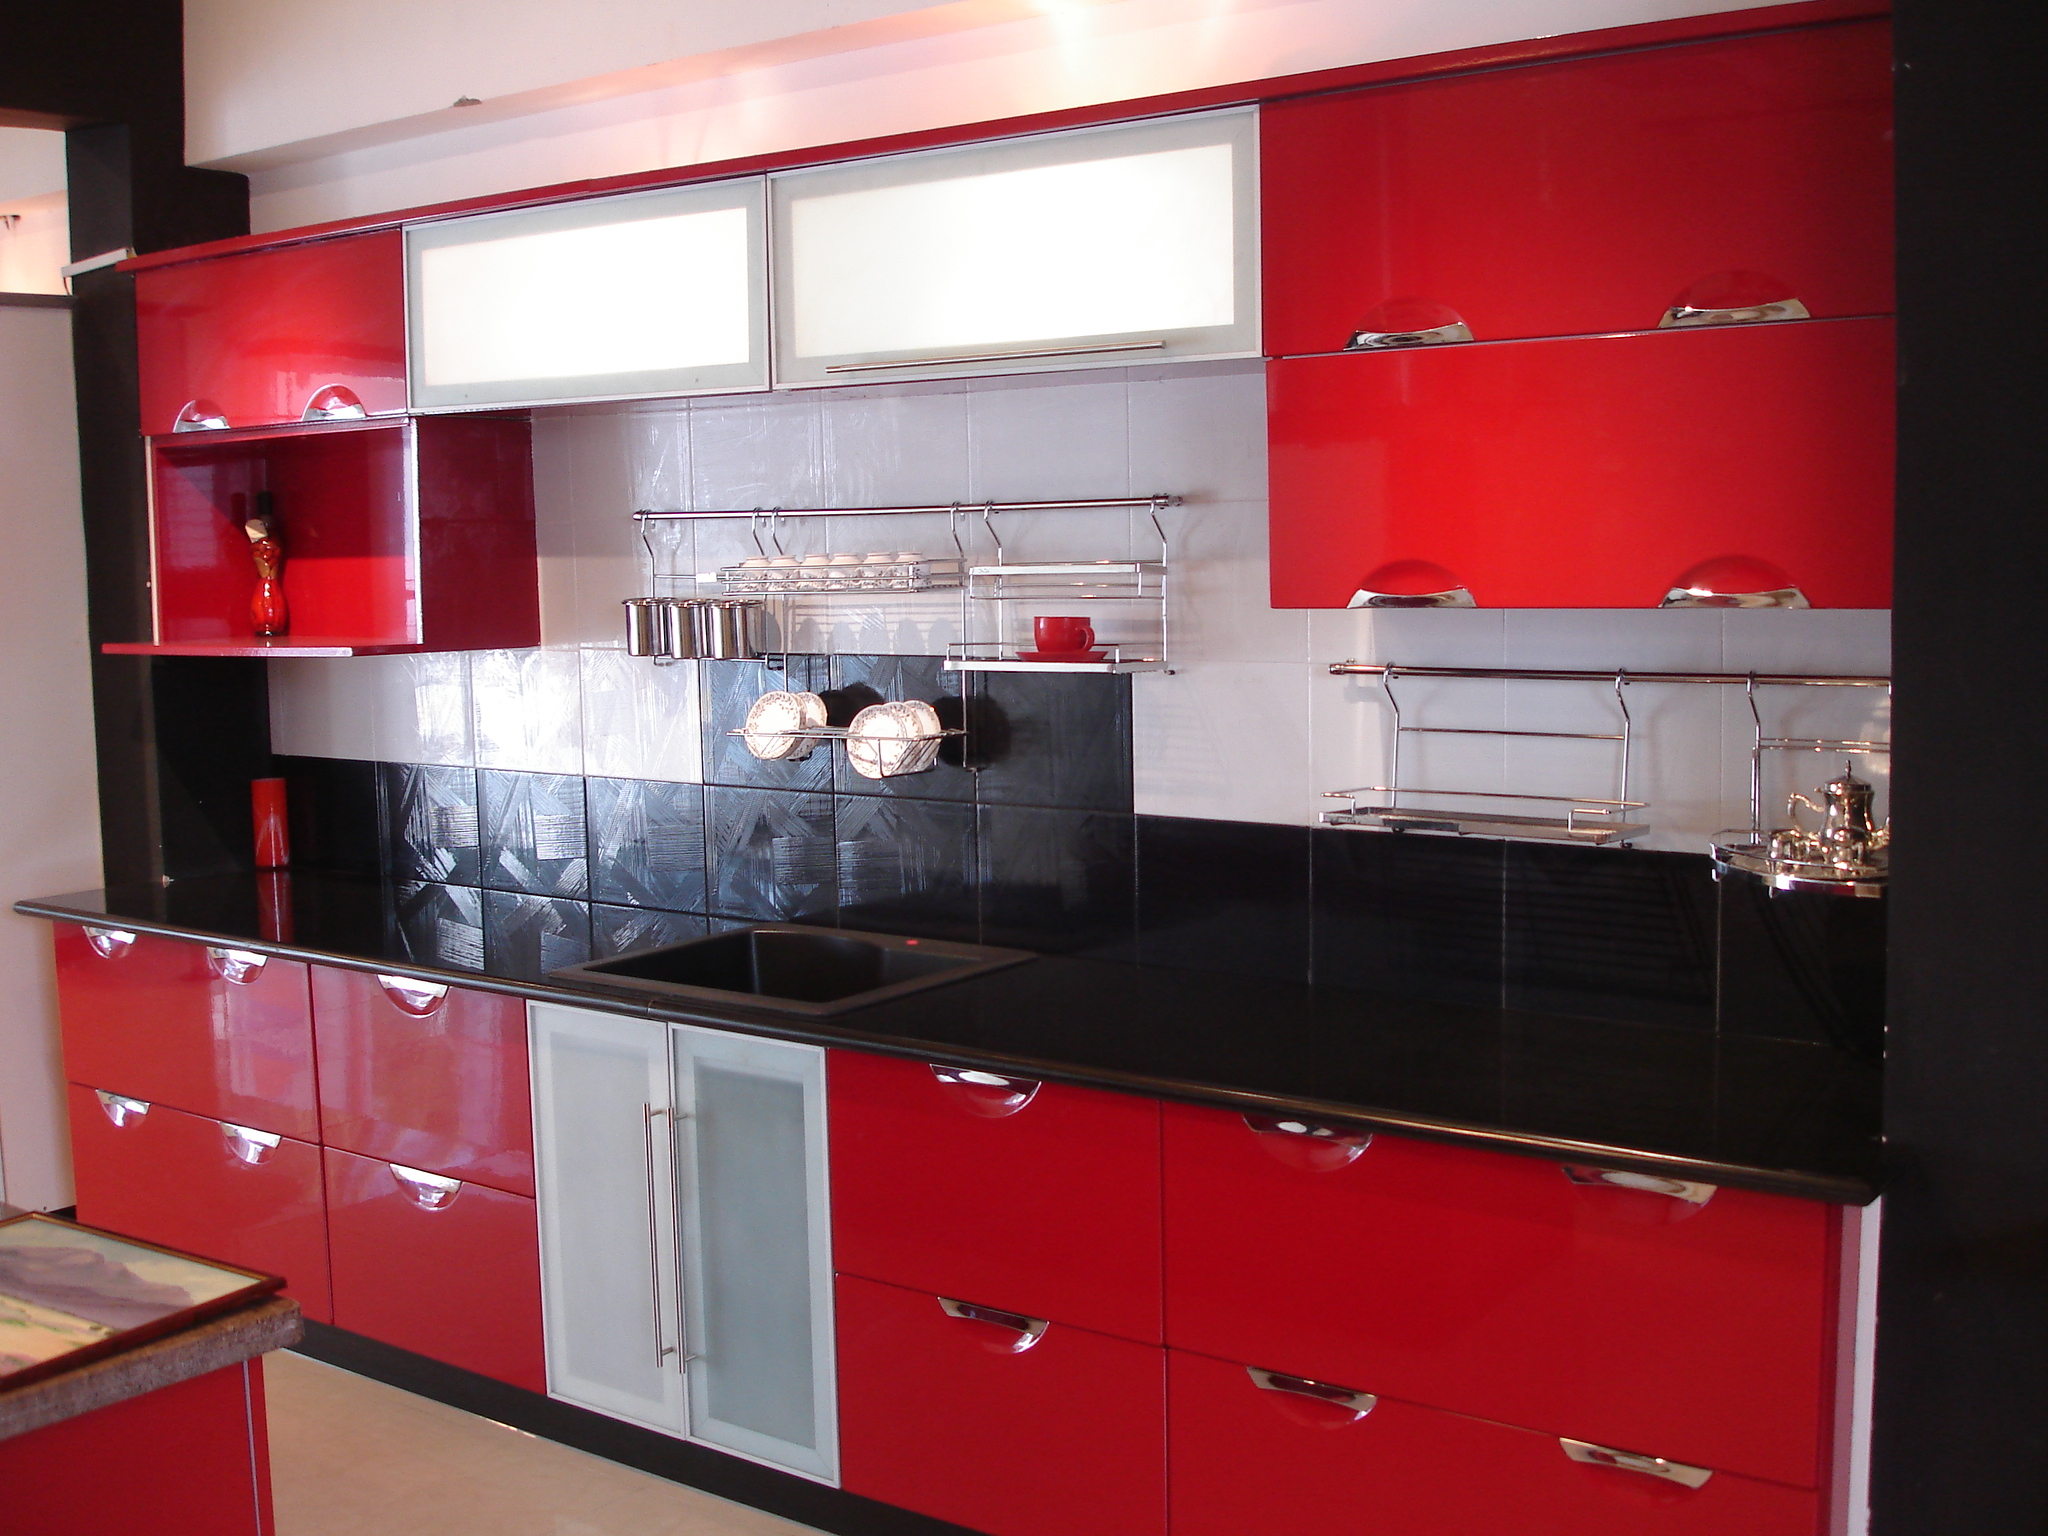 Modern Indian Red Kitchen Cabinets (View 10 of 10)